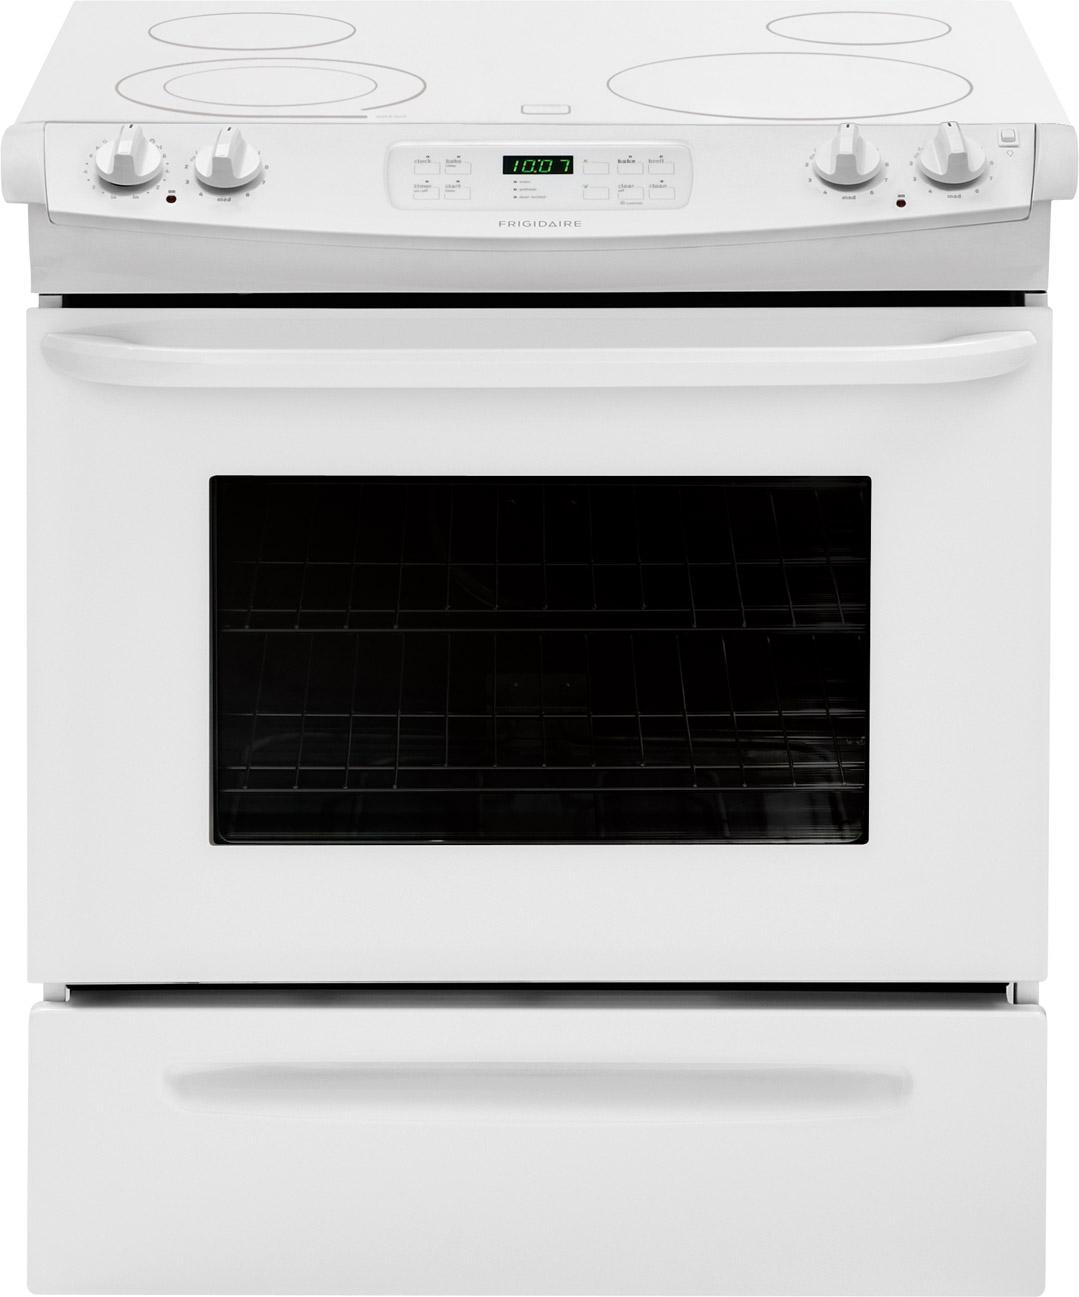 "Frigidaire Electric Range 30"" Slide-In Electric Range - Item Number: FFES3025PW"